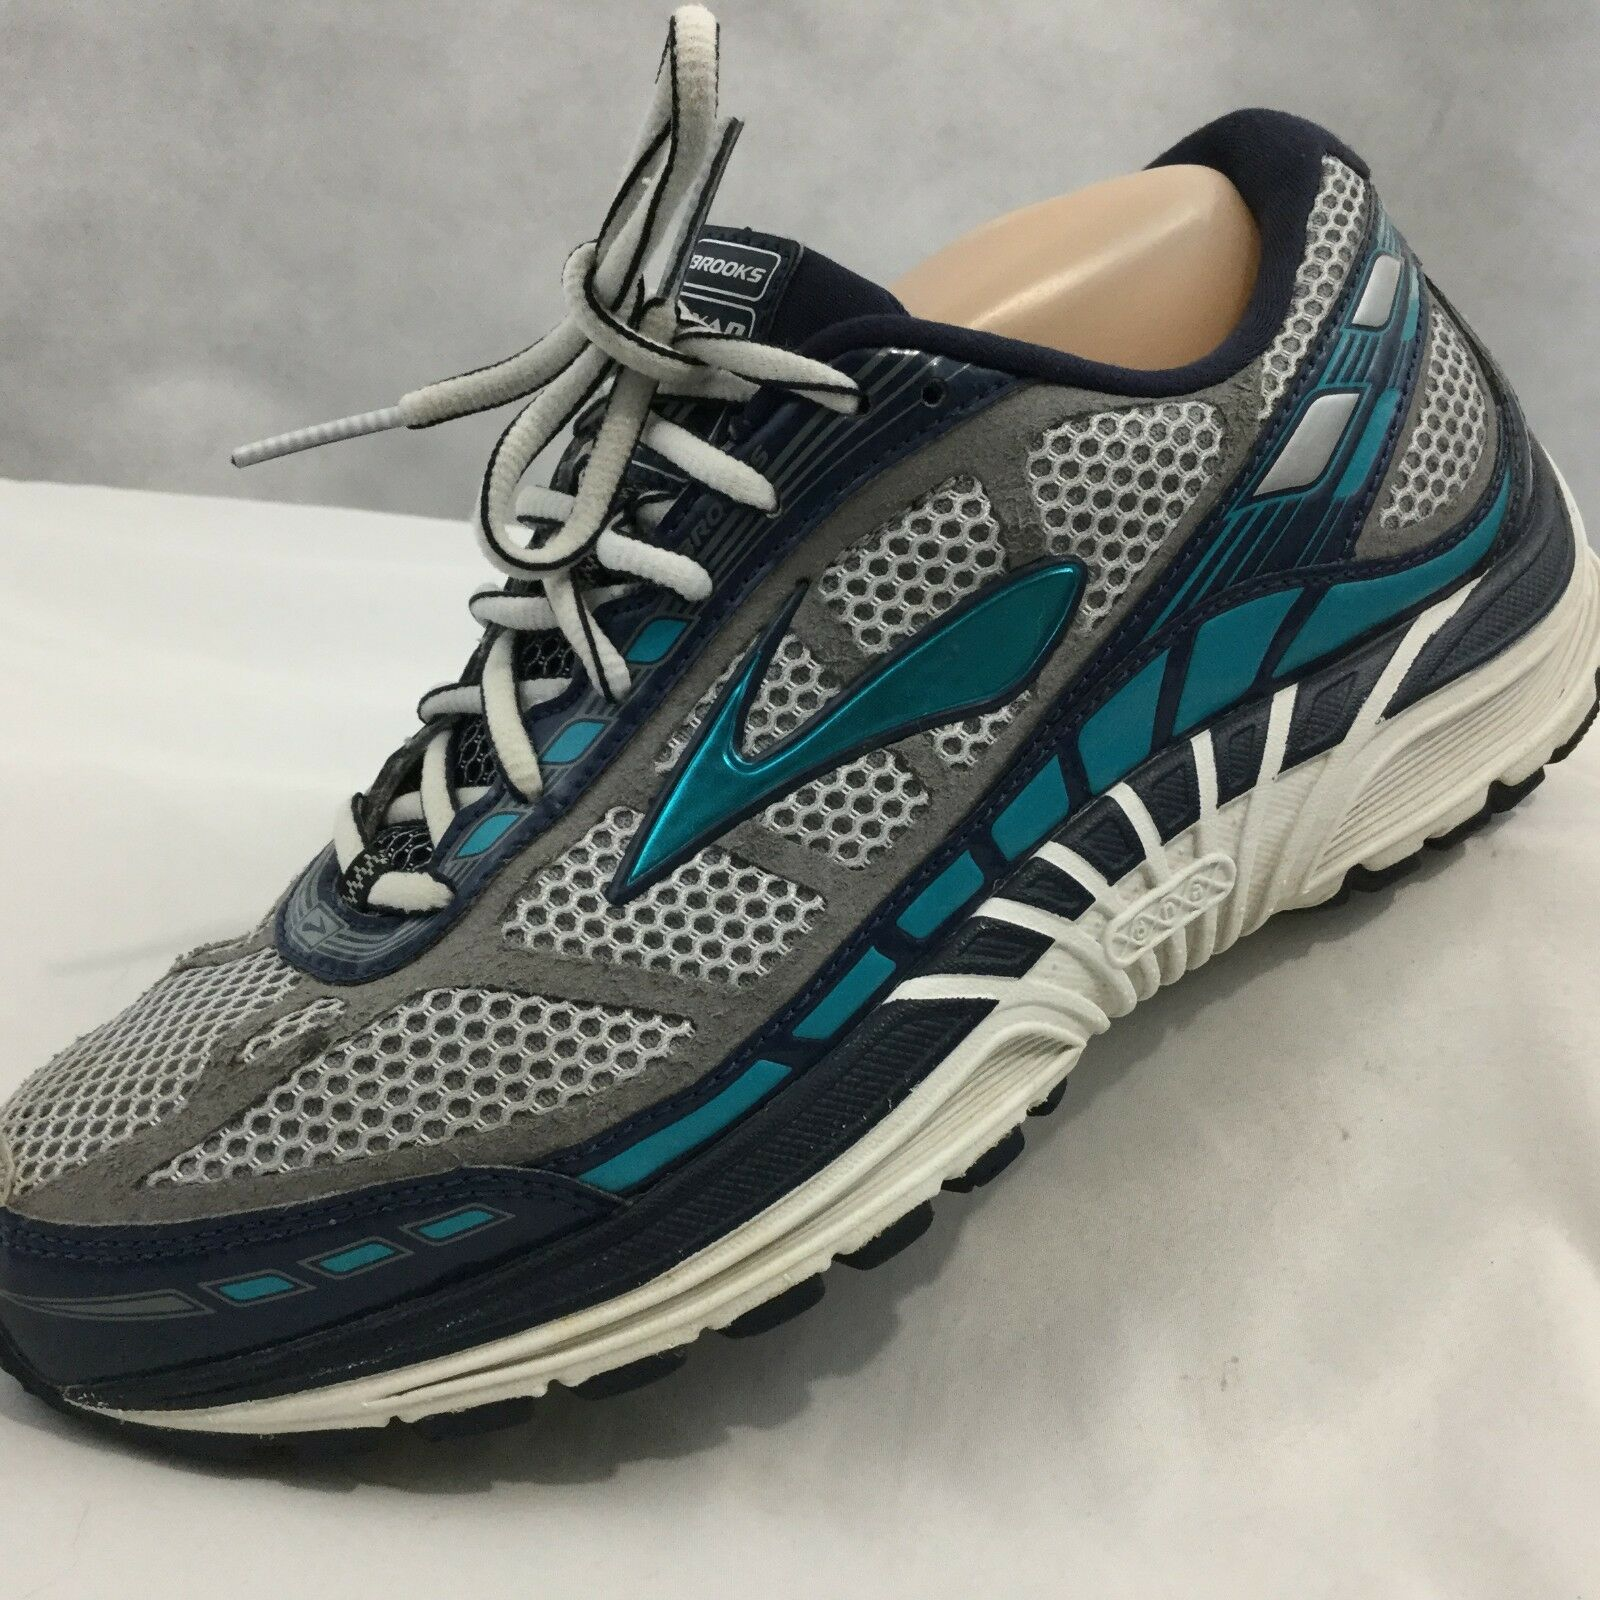 promo code 0dd32 33608 BROOKS Dyad 8 Sz Sz Sz 8 Wide Gray Blue Running Shoes Athletic Sneakers  Running a043f2